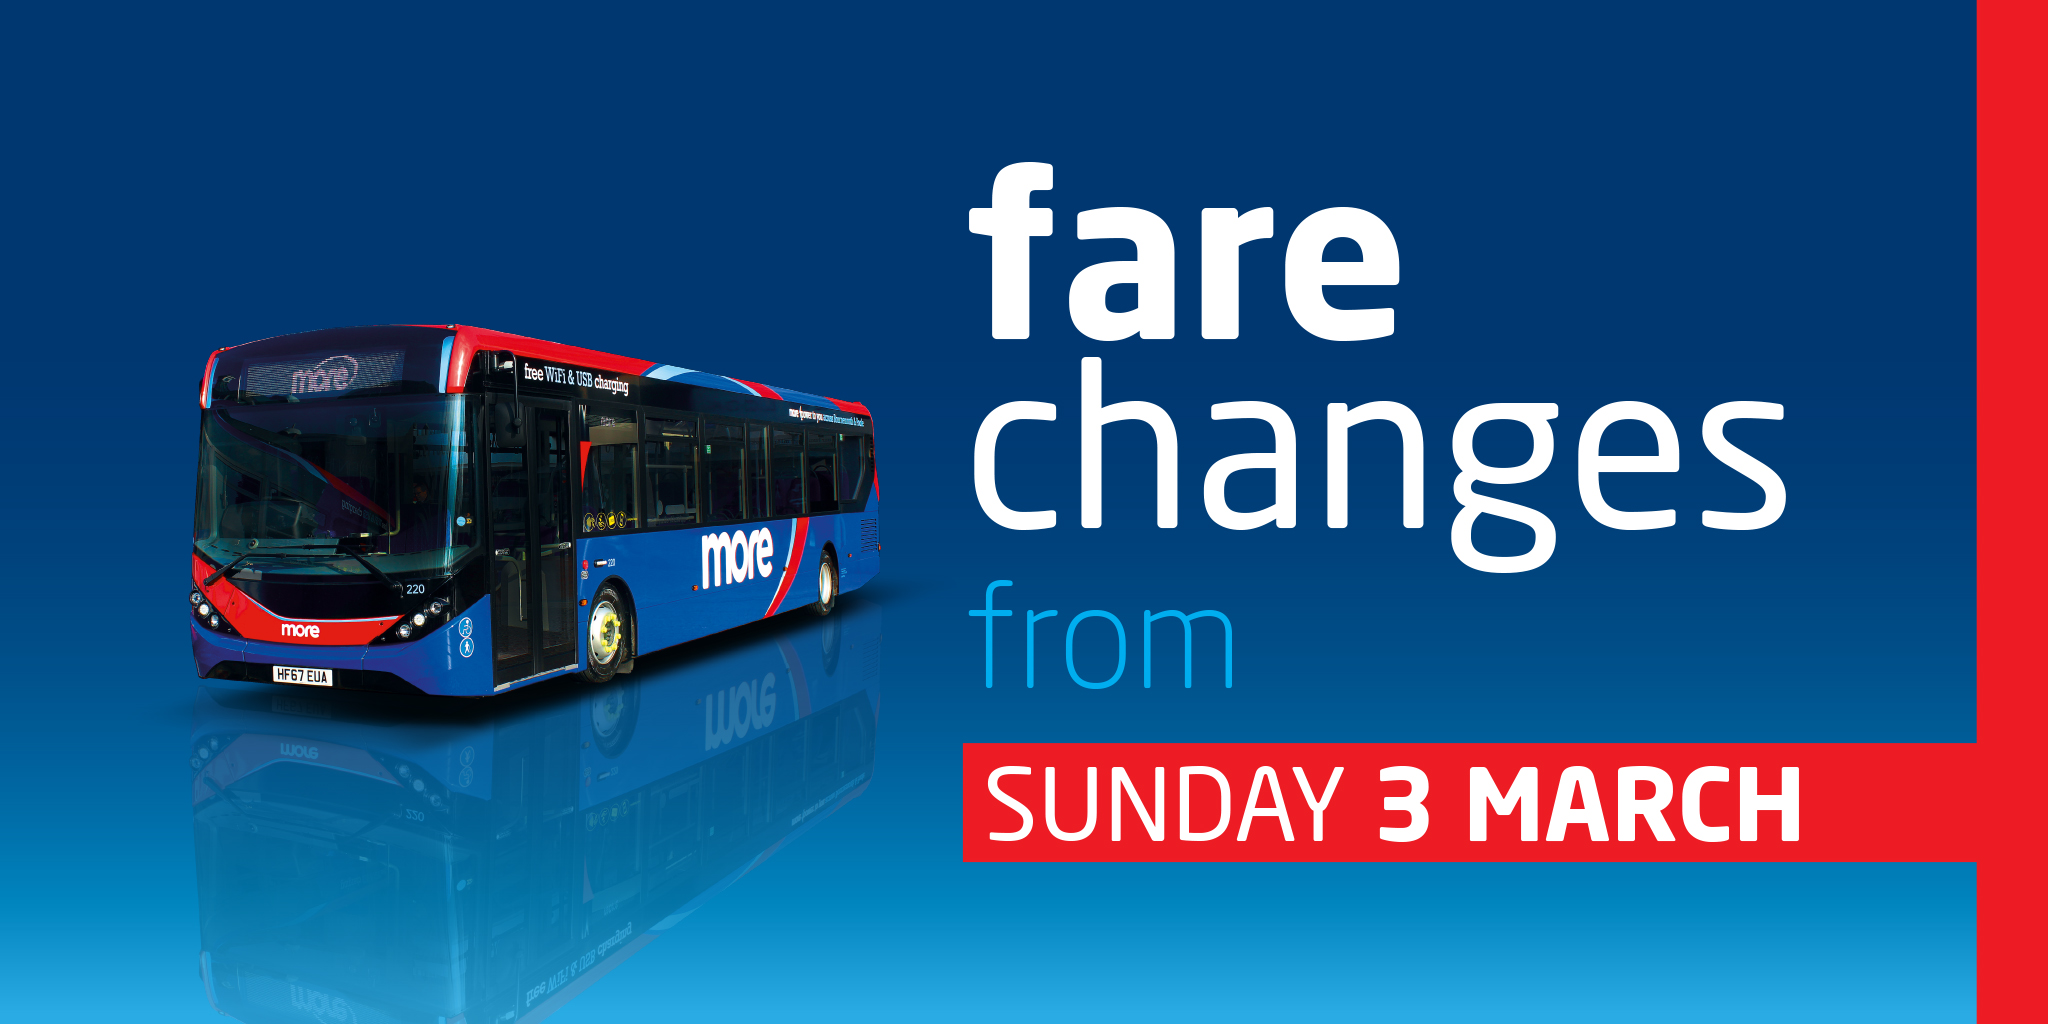 Image symbolising morebus fare changes from Sunday 3rd March